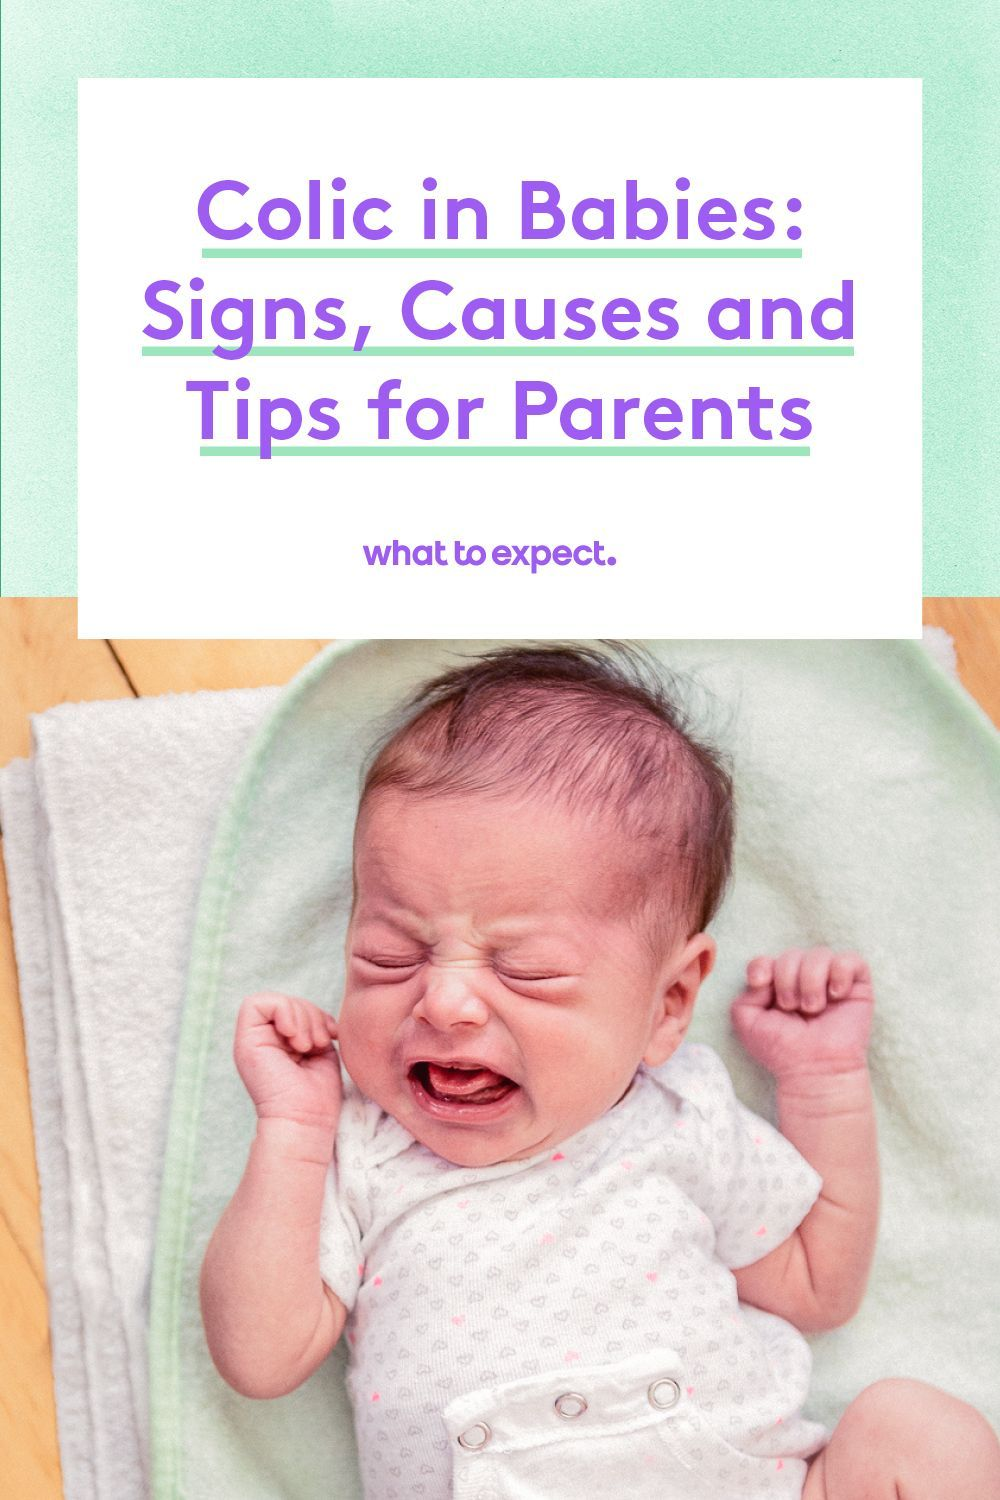 what is good for colic in babies